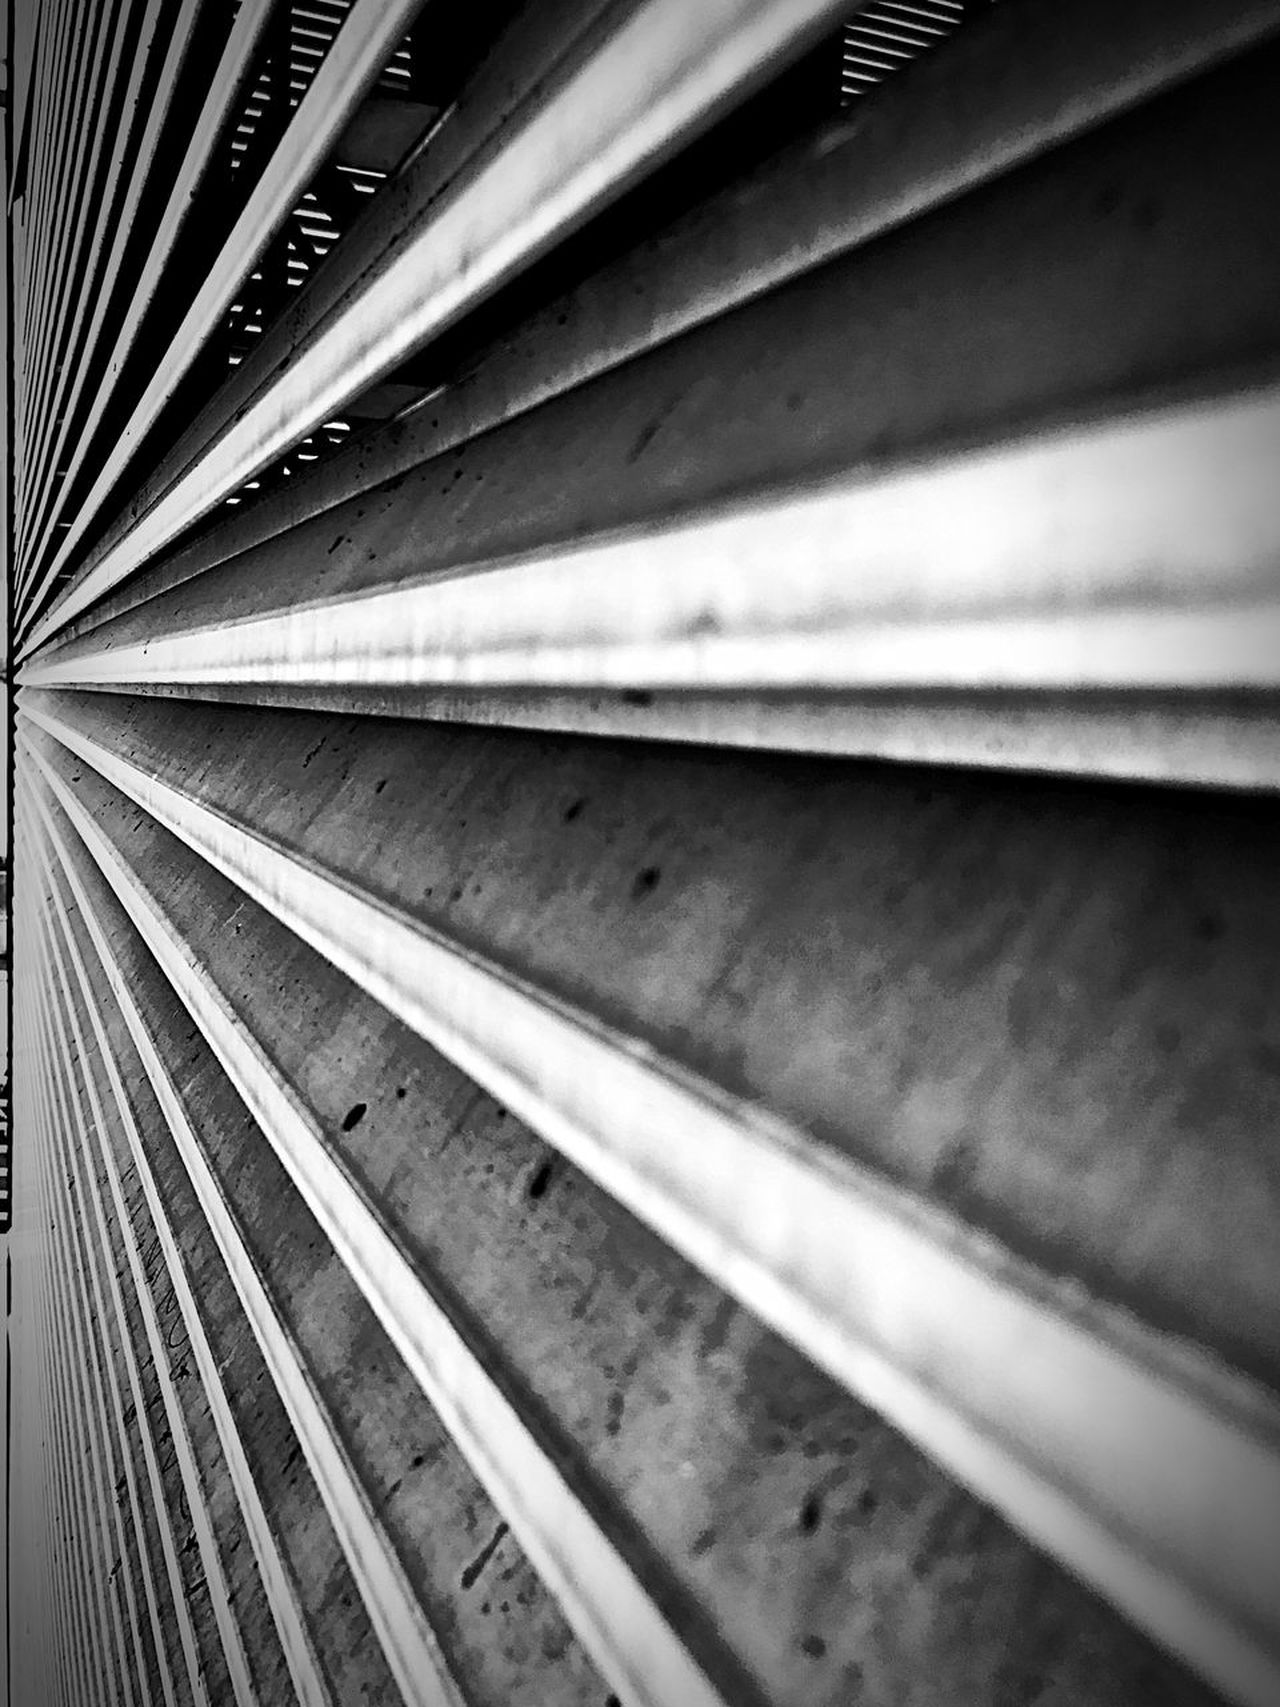 No People Close-up Backgrounds Full Frame Day Architecture Iron Blades The Great Outdoors - 2017 EyeEm Awards